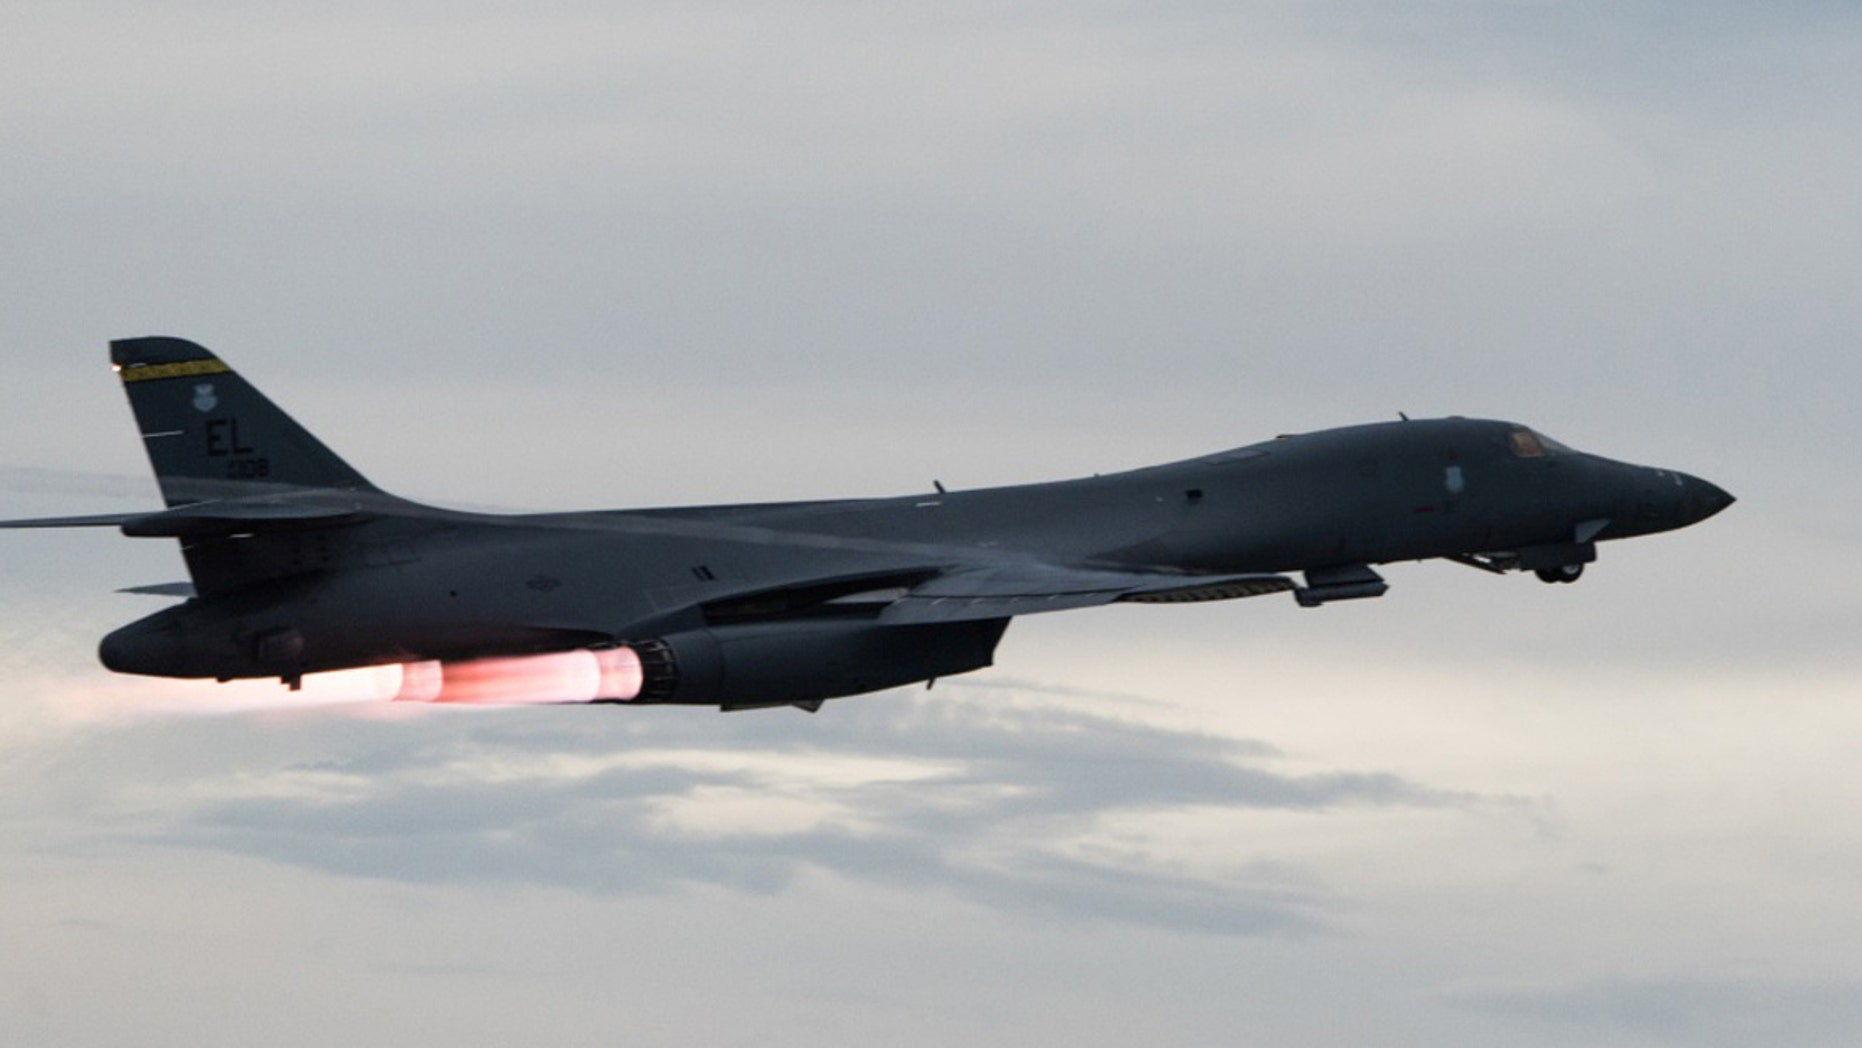 A U.S. Air Force B-1B Lancer takes-off to fly a bilateral mission with Japanese and South Korea Air Force jets in the vicinity of the Sea of Japan, from Andersen Air Force Base, Guam, October 10, 2017.